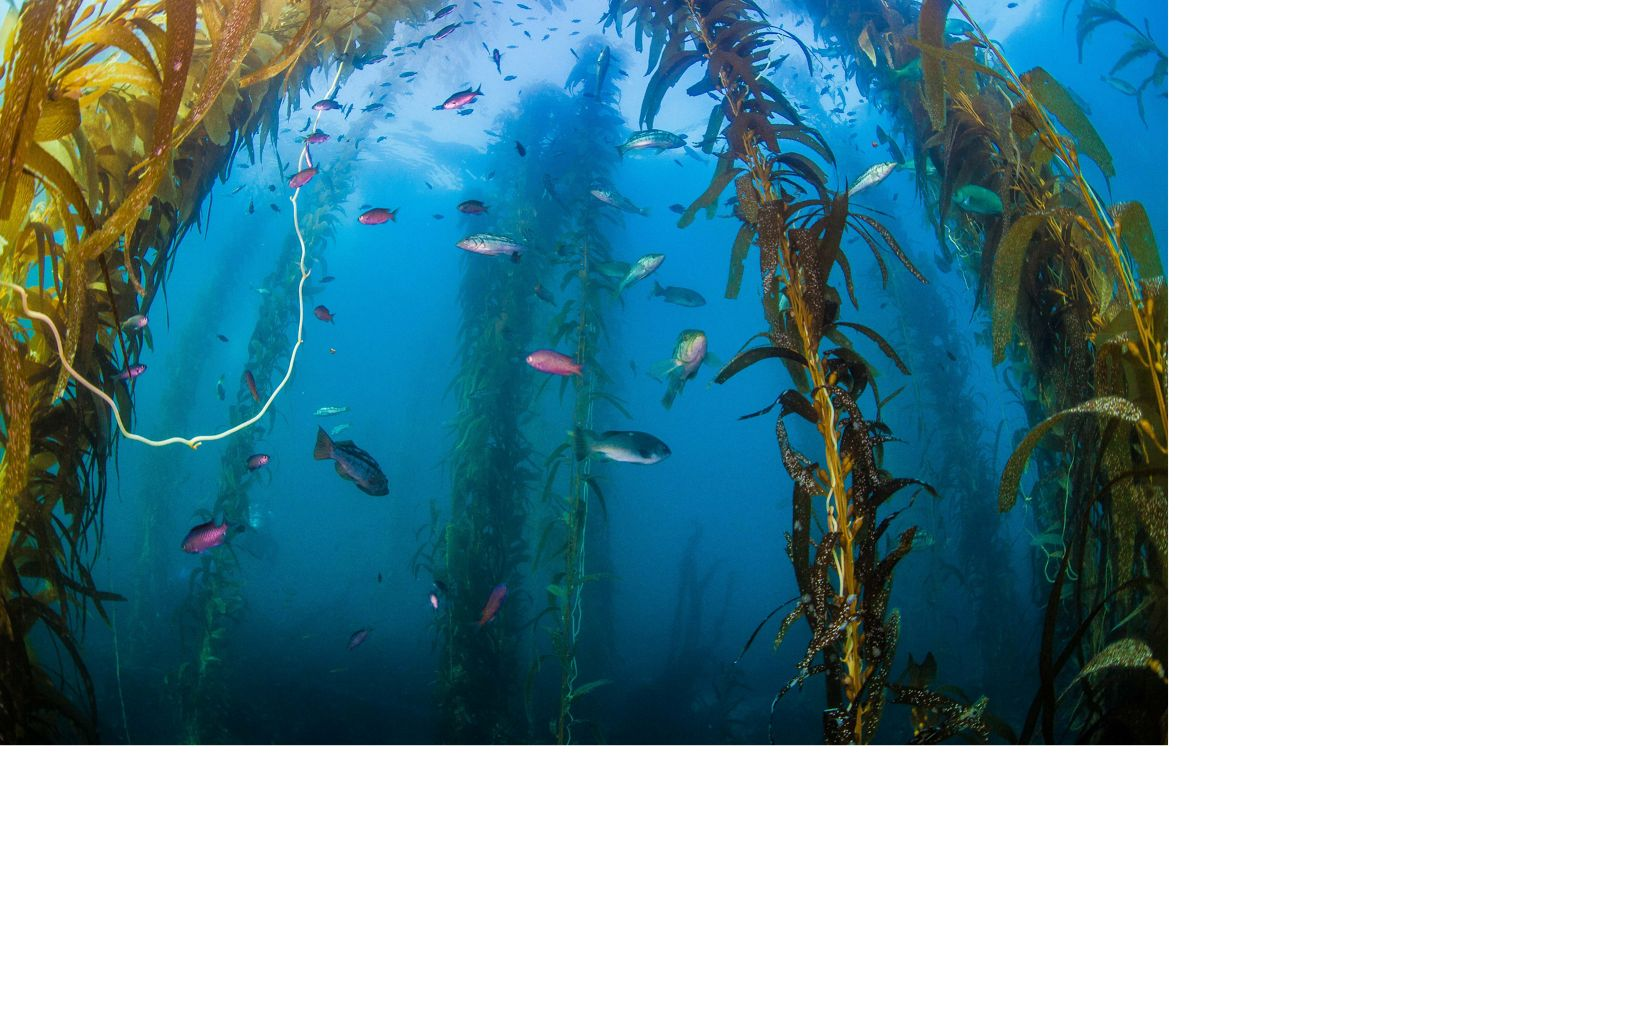 Fish in a kelp forest off the coast of California